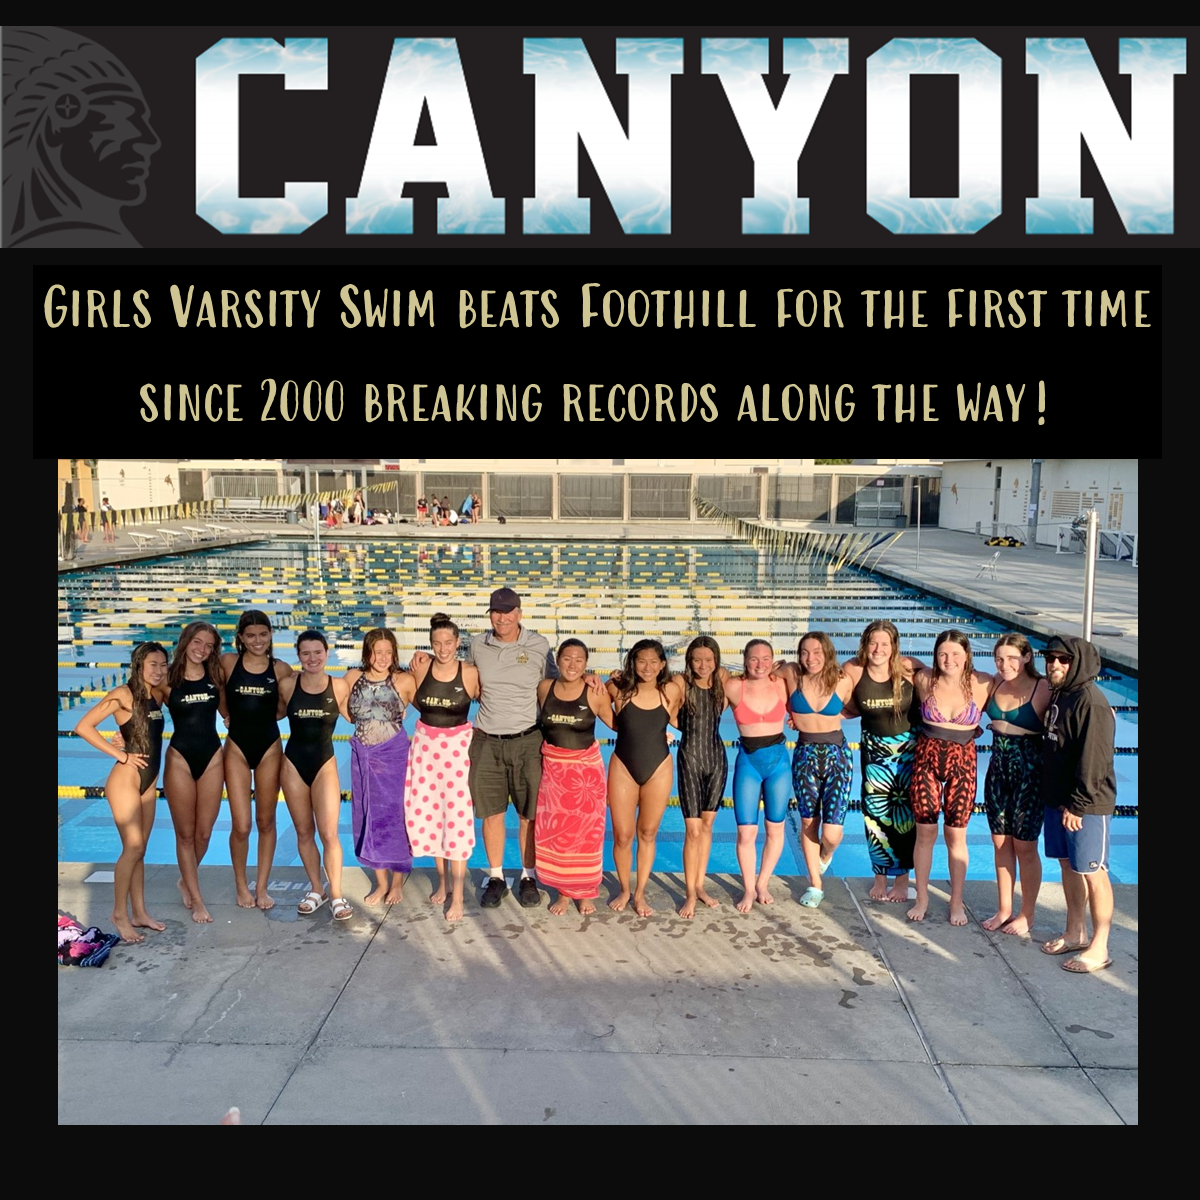 GIRLS VARSITY SWIM BEATS FOOTHILL FOR THE FIRST TIME SINCE 2000 BREAKING RECORDS ALONG THE WAY!